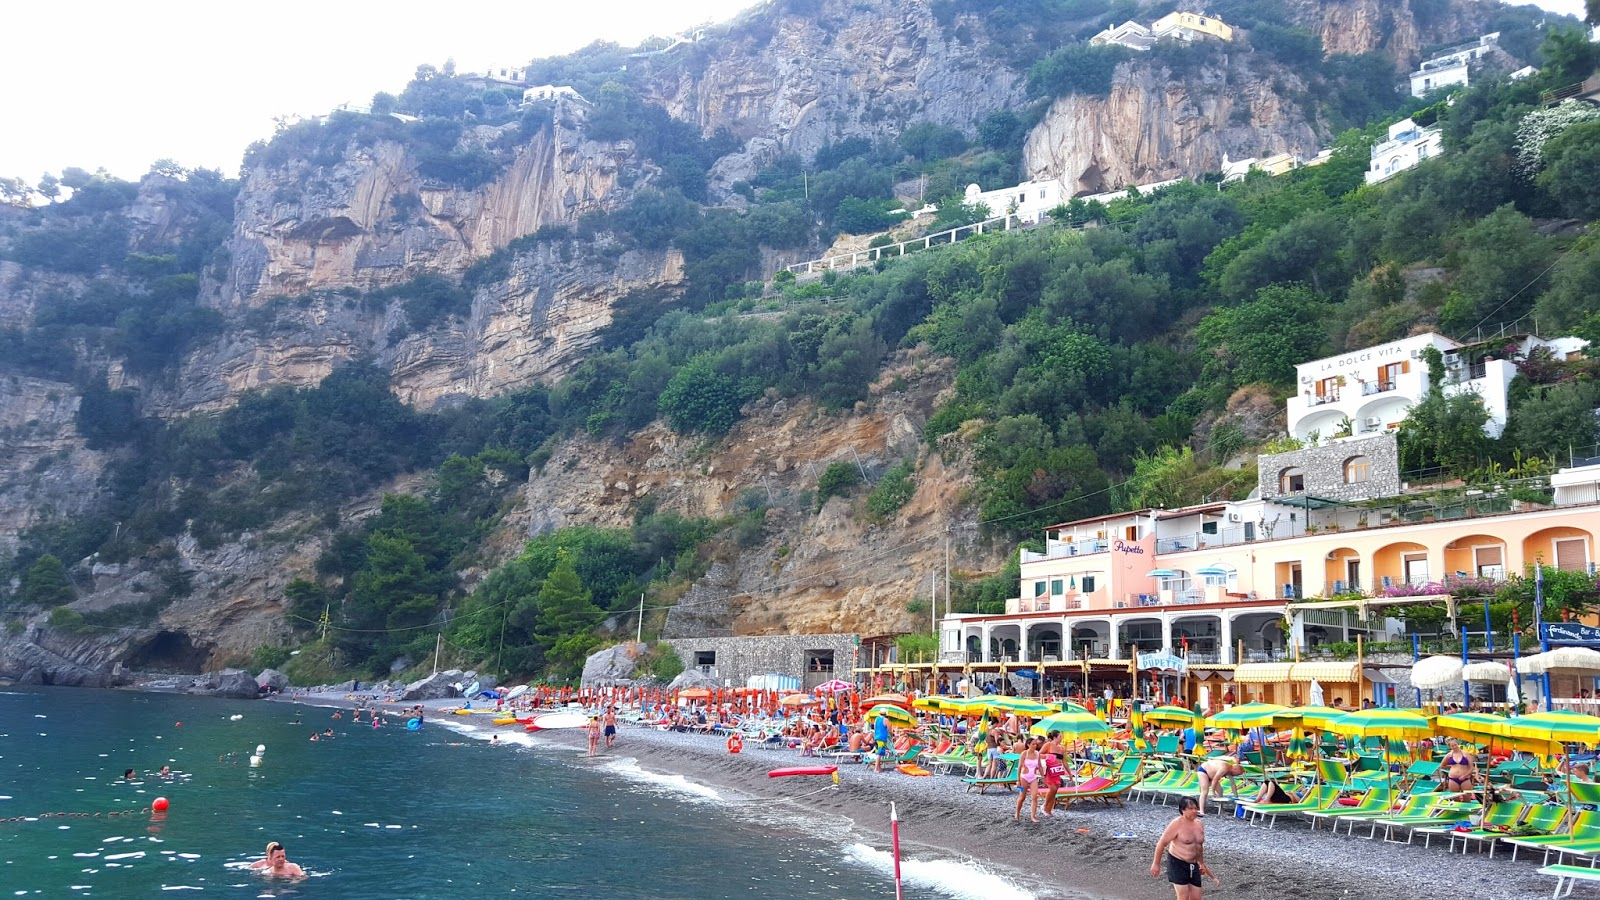 Travel Style: Positano, Italy (The Amalfi Coast)